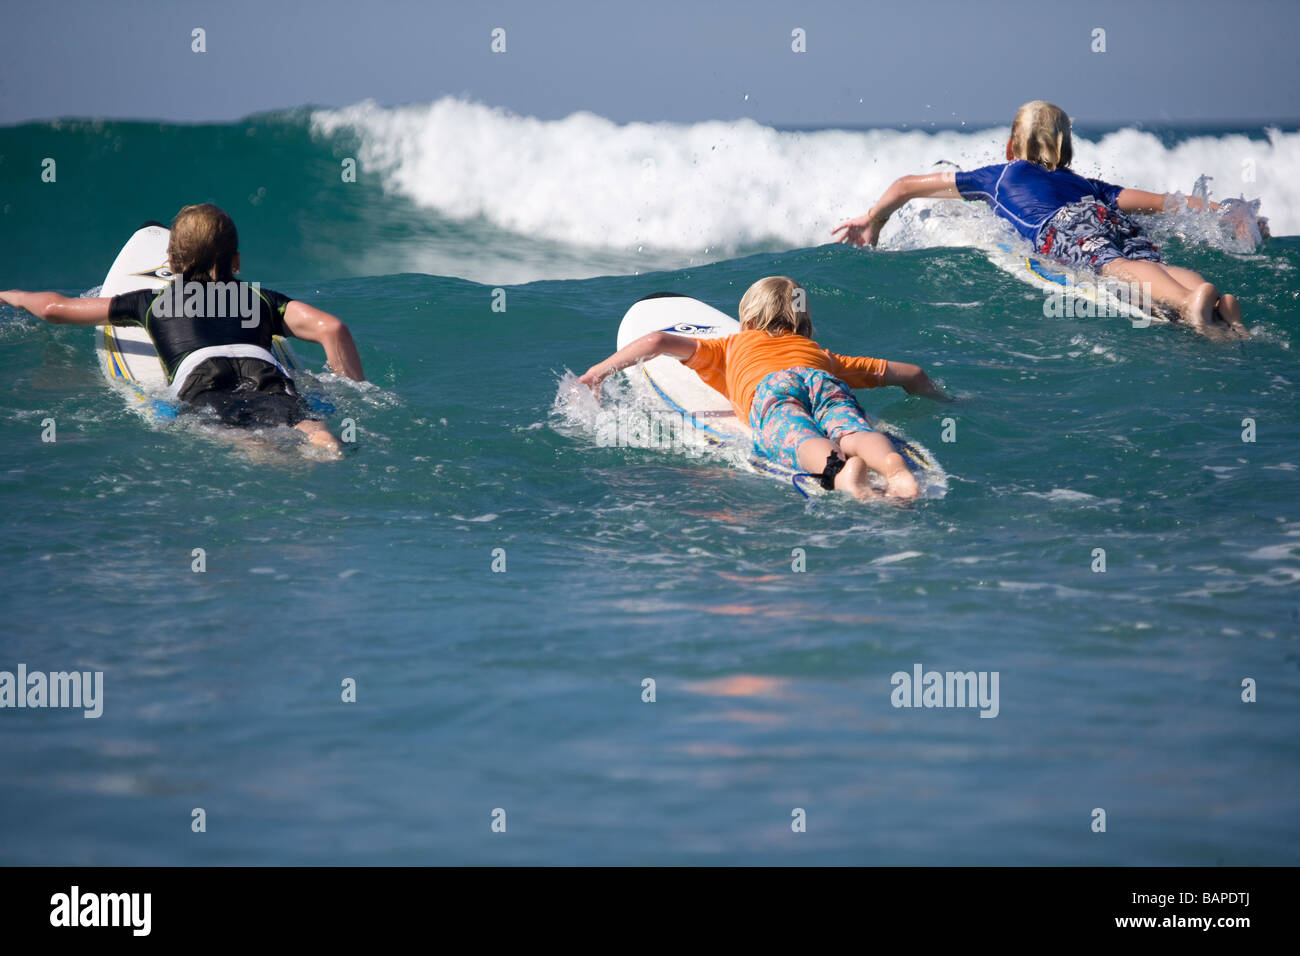 Surfing in Mt. Mauganui New Zealand - Stock Image